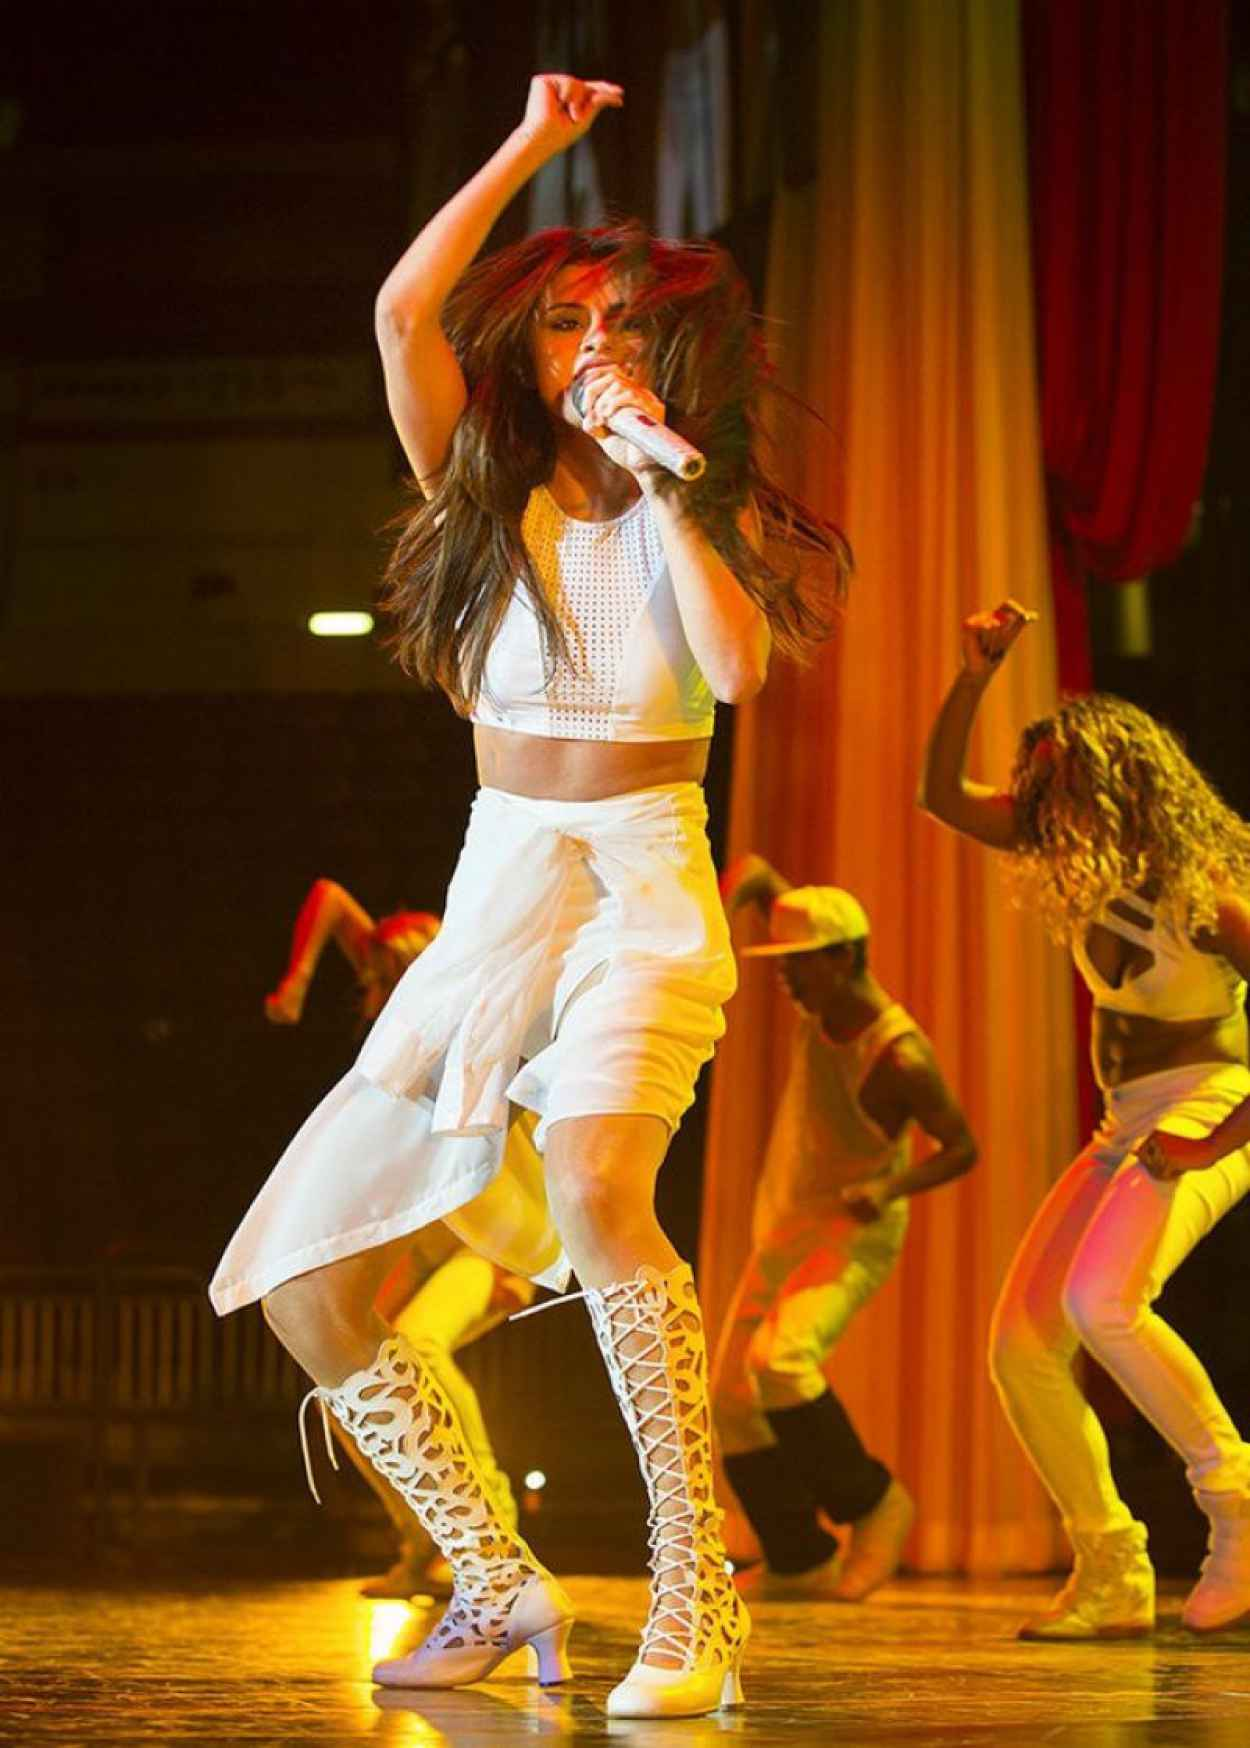 Selena Gomez - Stars Dance Tour in Hershey, Pennsylvania-1